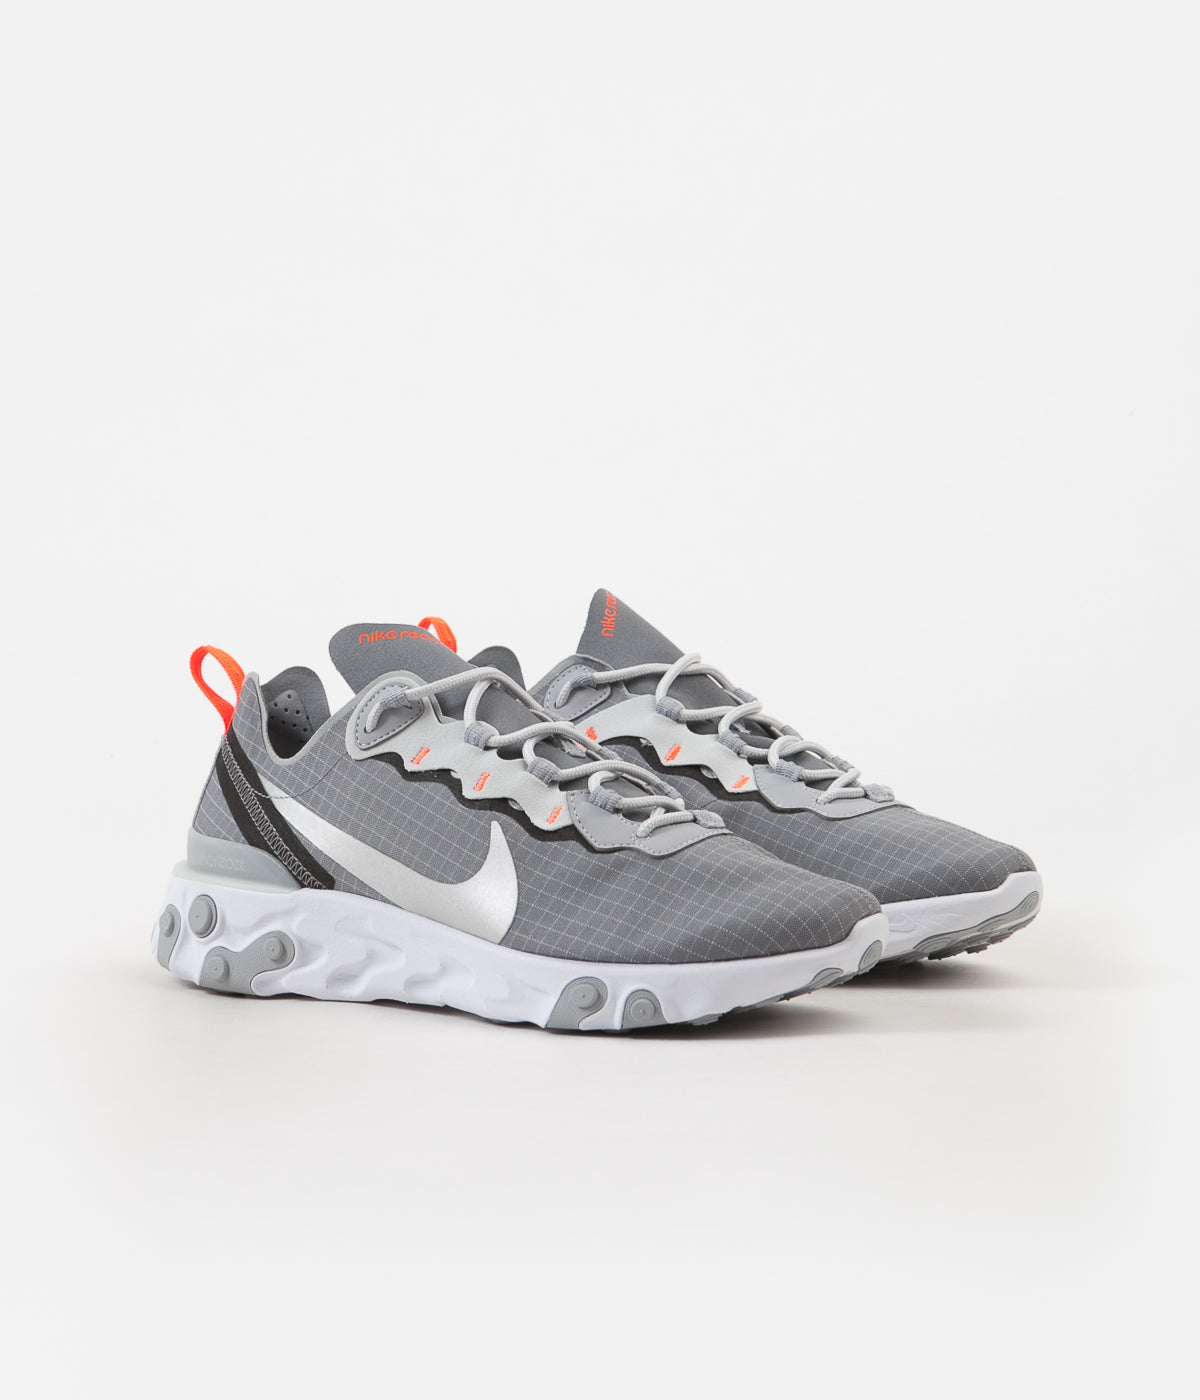 fdd4d8be47c2 ... Nike React Element 55 Shoes - Cool Grey / Metallic Silver - Hyper  Crimson ...